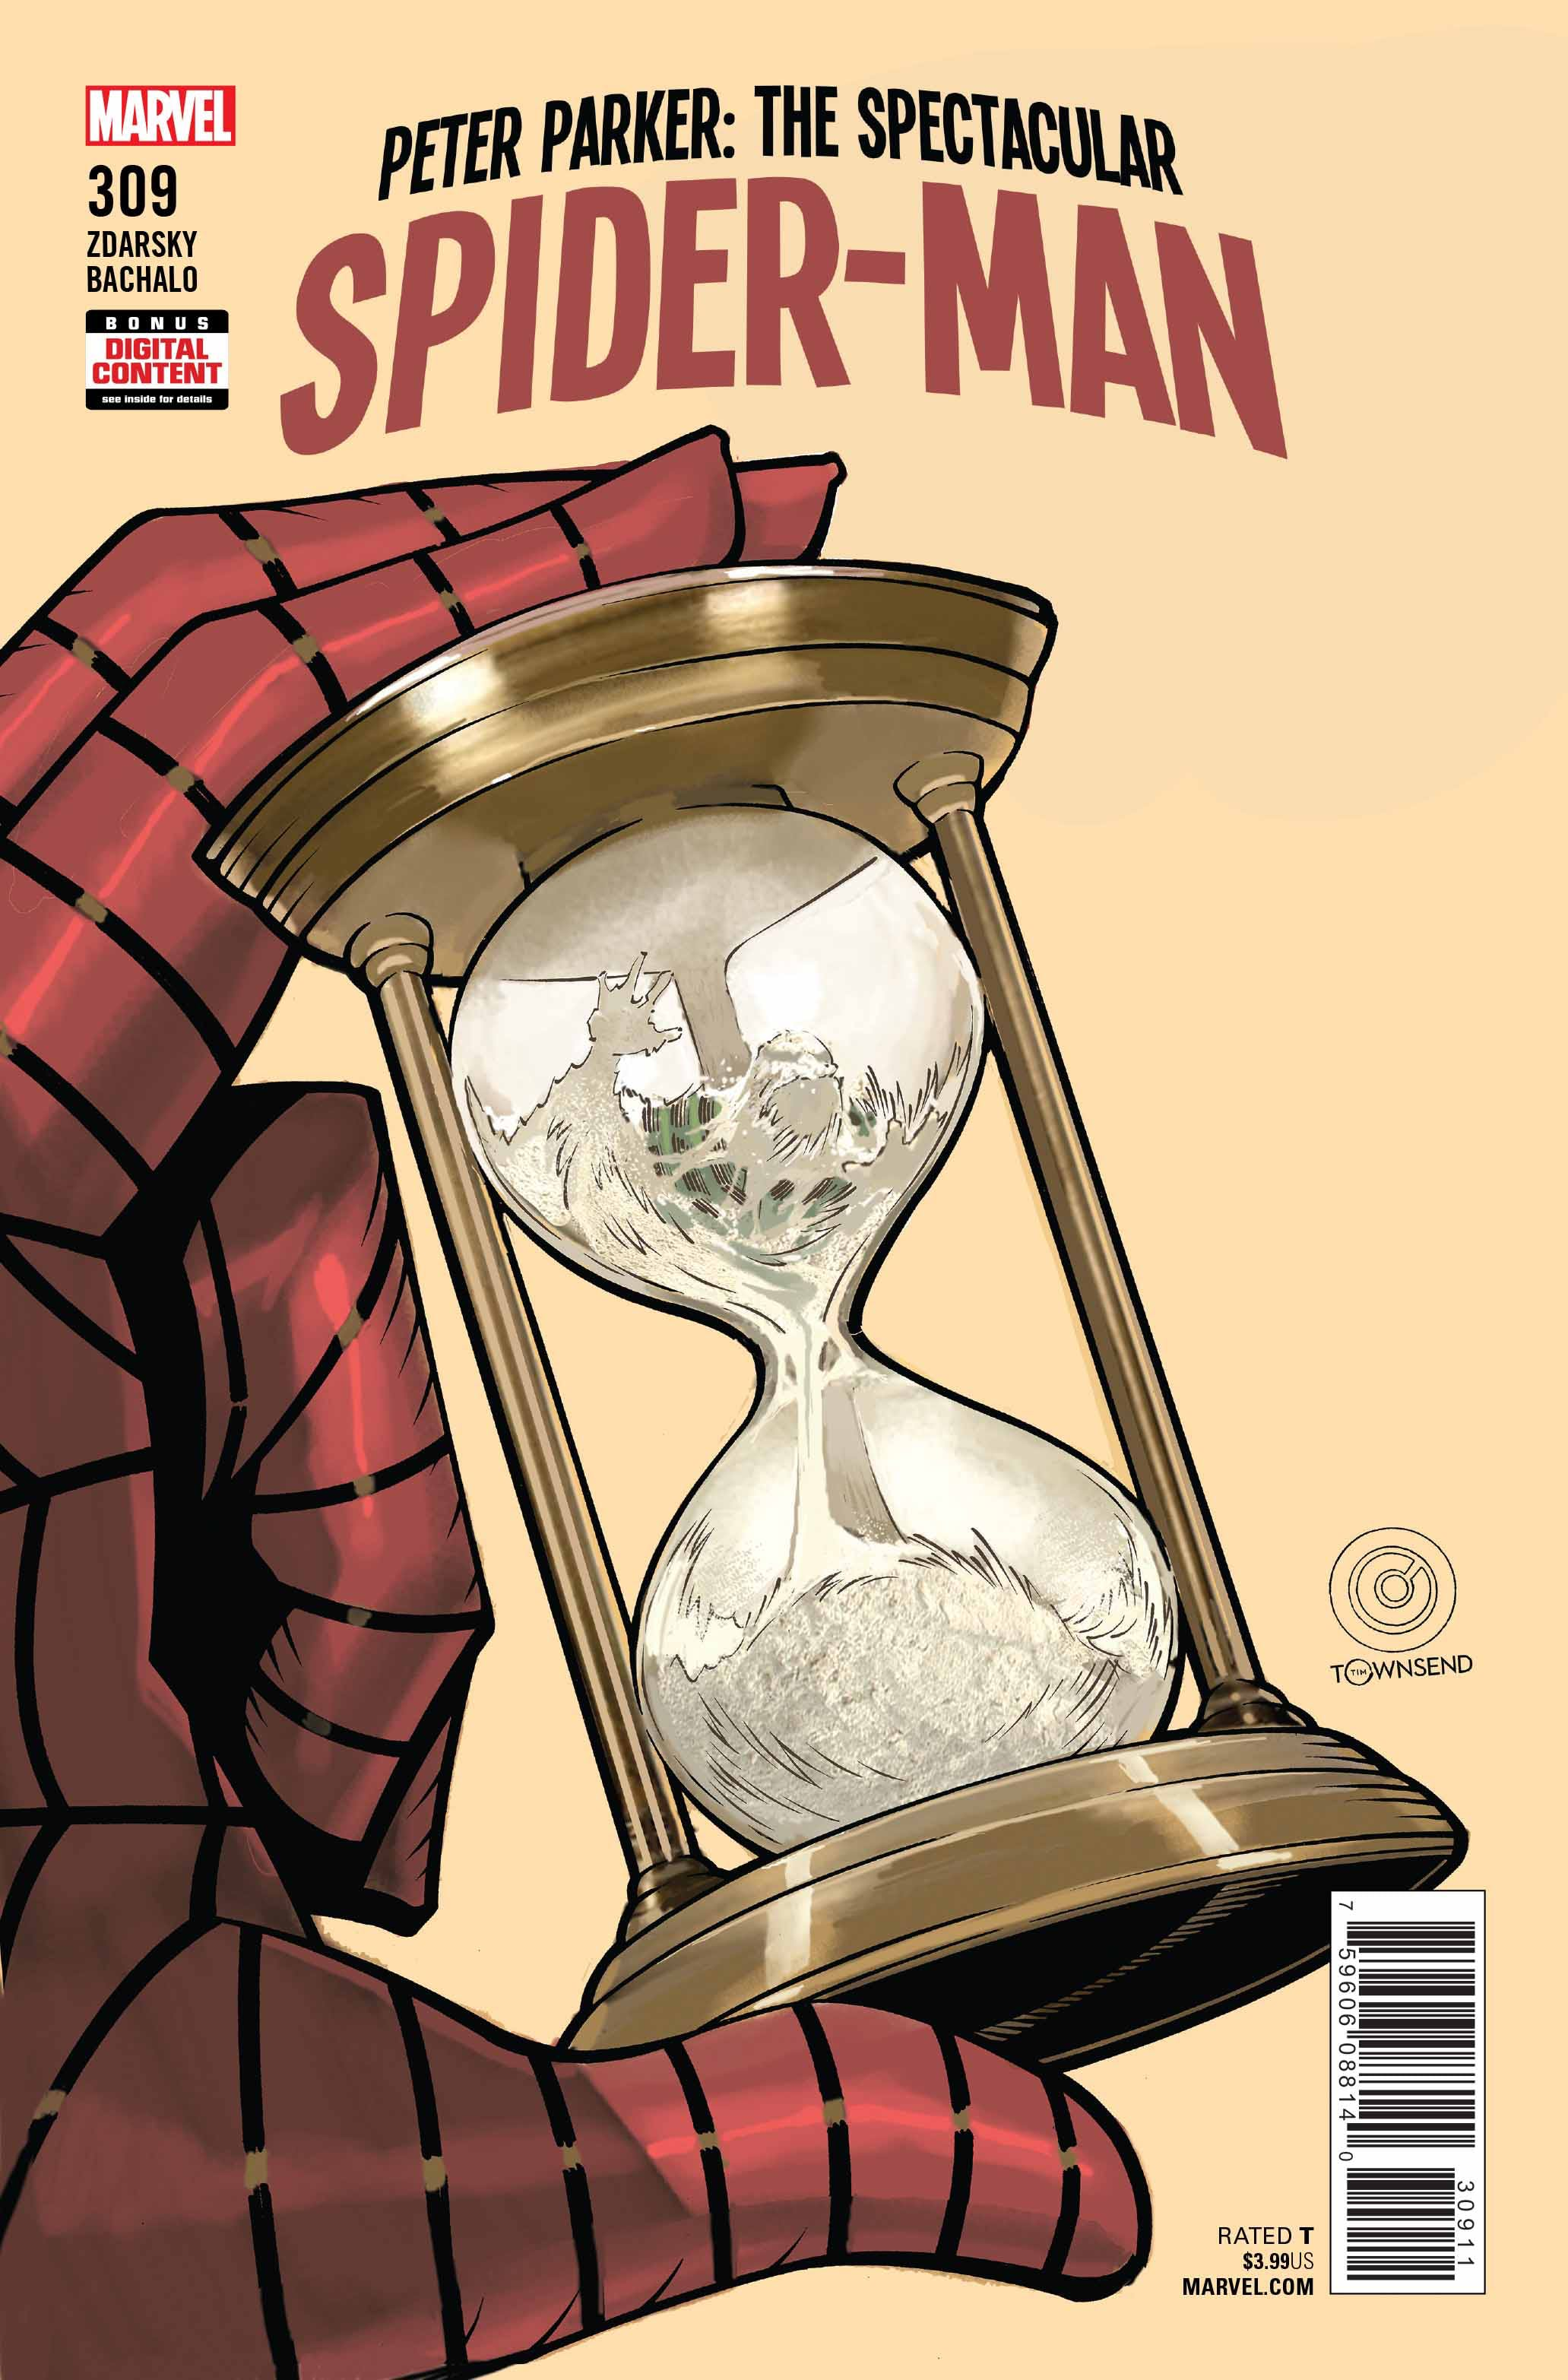 Peter Parker: The Spectacular Spider-Man Vol 1 309